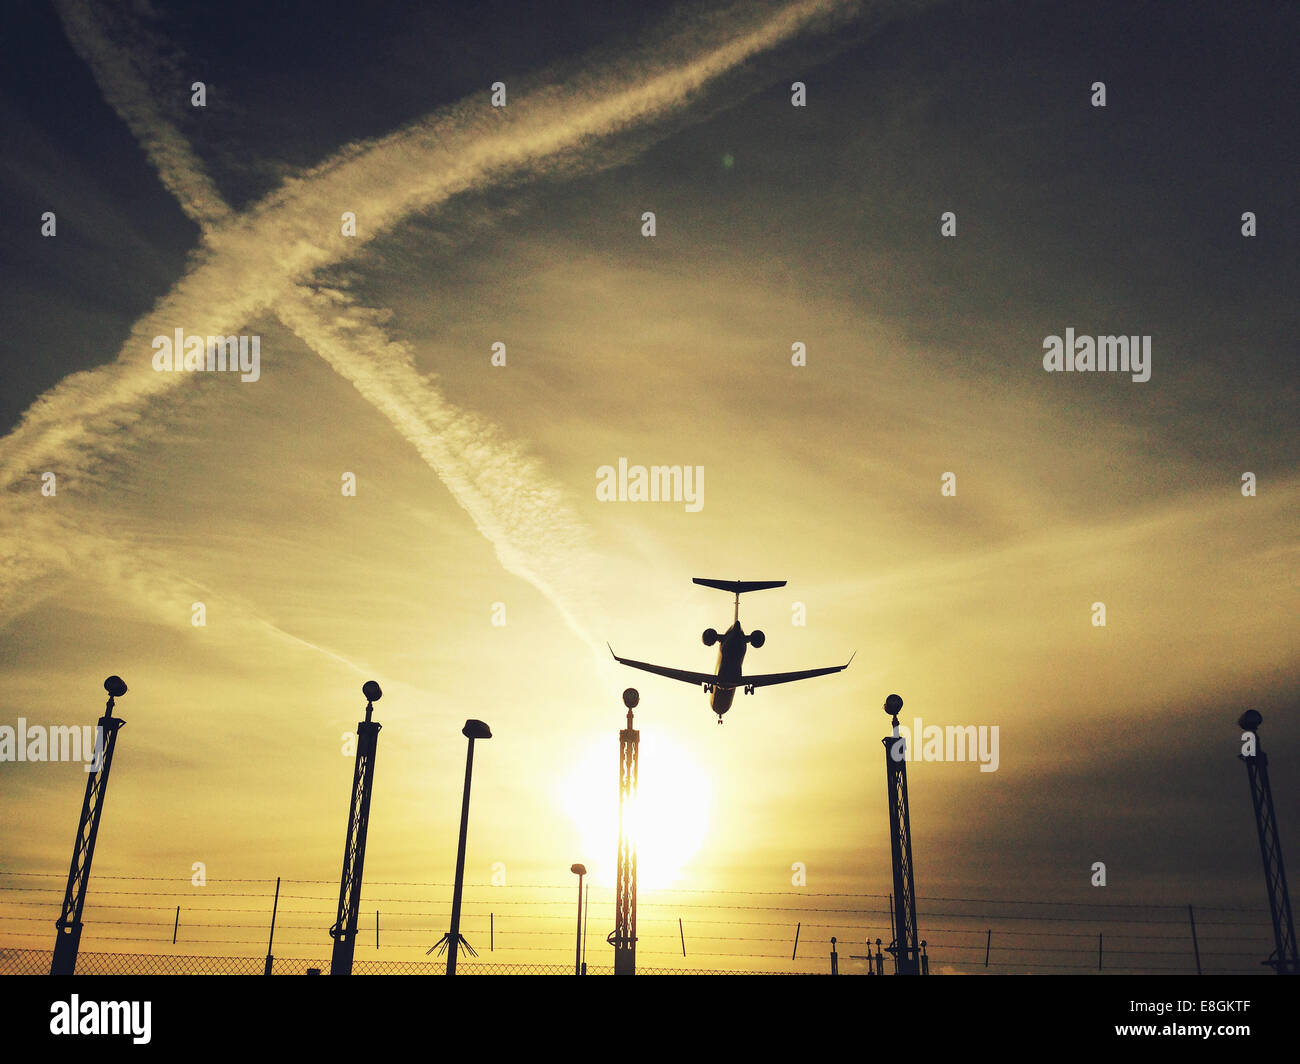 Silhouette of landing airplane - Stock Image